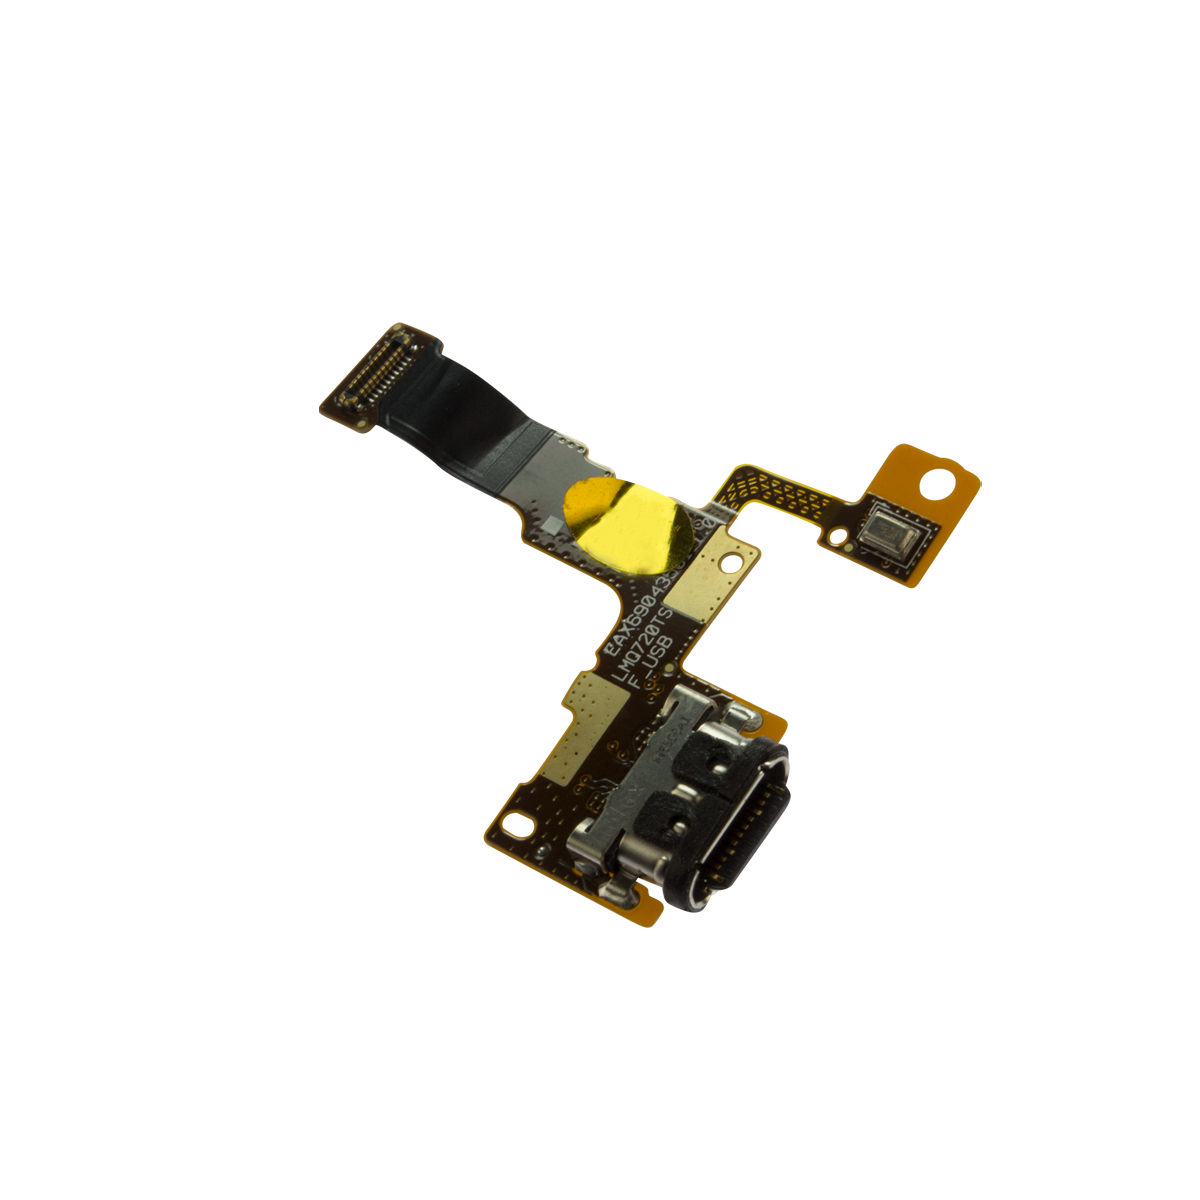 LG Stylo 5 Charging Port Flex Cable Replacement